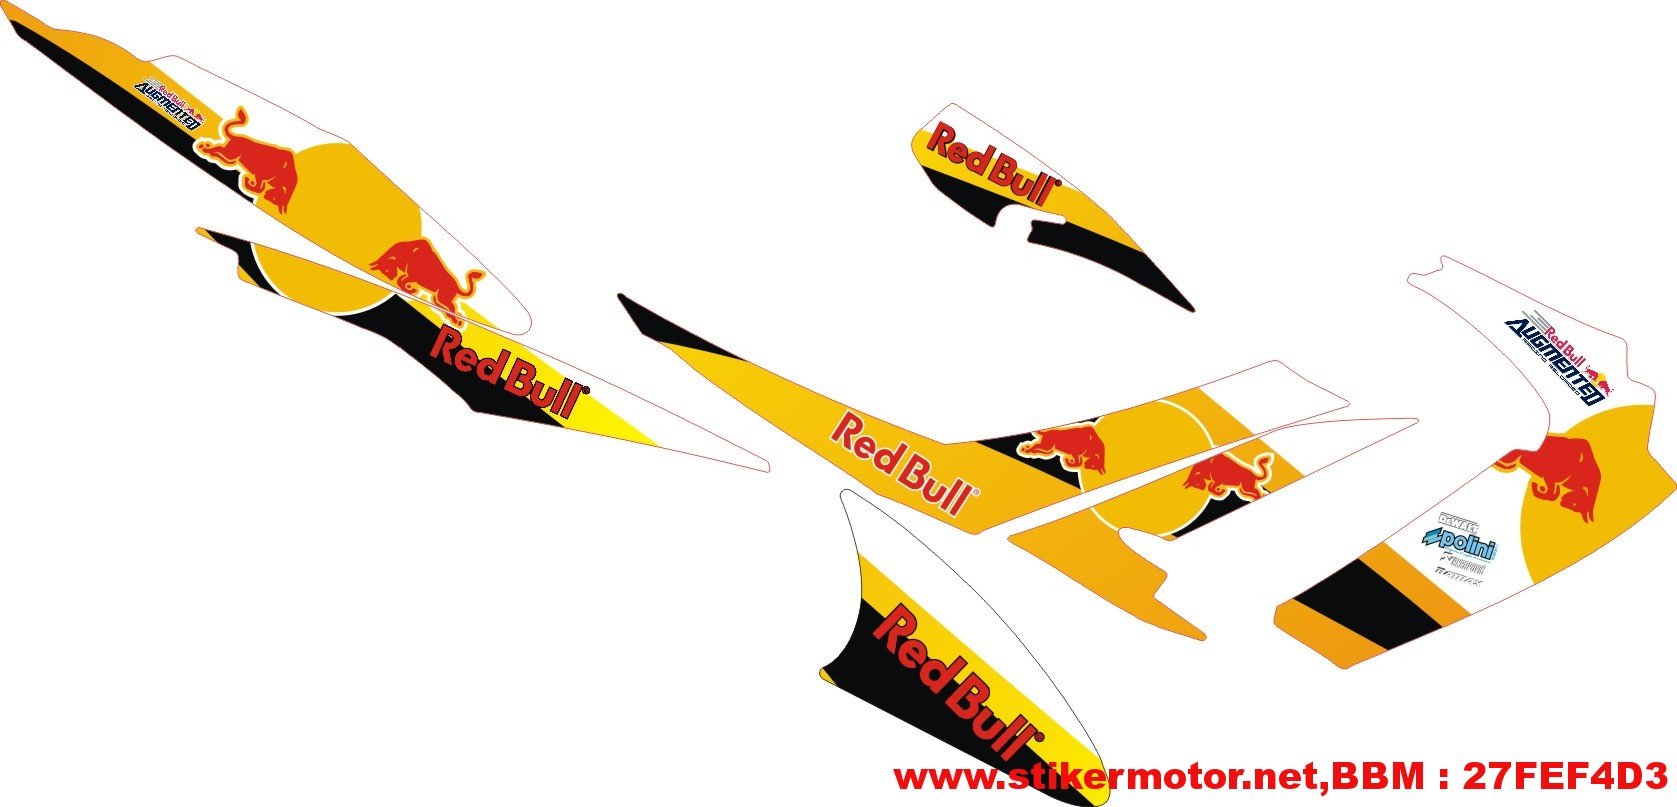 Cutting Sticker Motor Satria Fu Redbull Stikermotor Net Customize